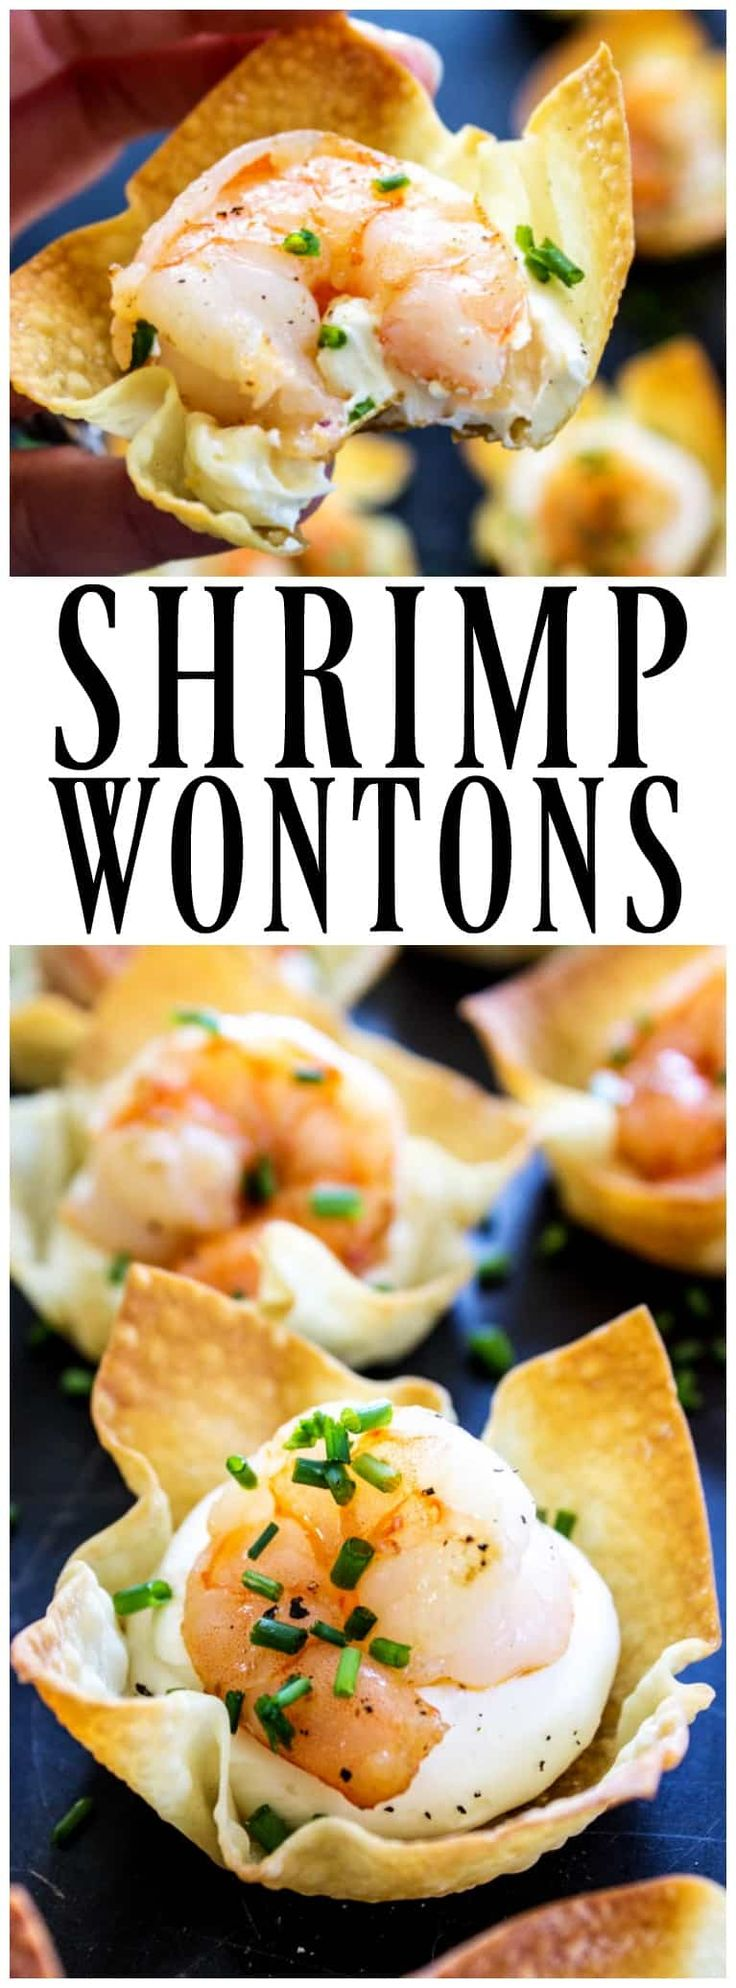 These BAKED SHRIMP WONTONS are a deliciously easy appetizer. Simple and elegant, your guests will love this twist on rangoons. #appetizers #holidayappetizers #wontons #rangoon #shrimprecipes #shrimp #appetizer #holidayrecipes #recipes #baked